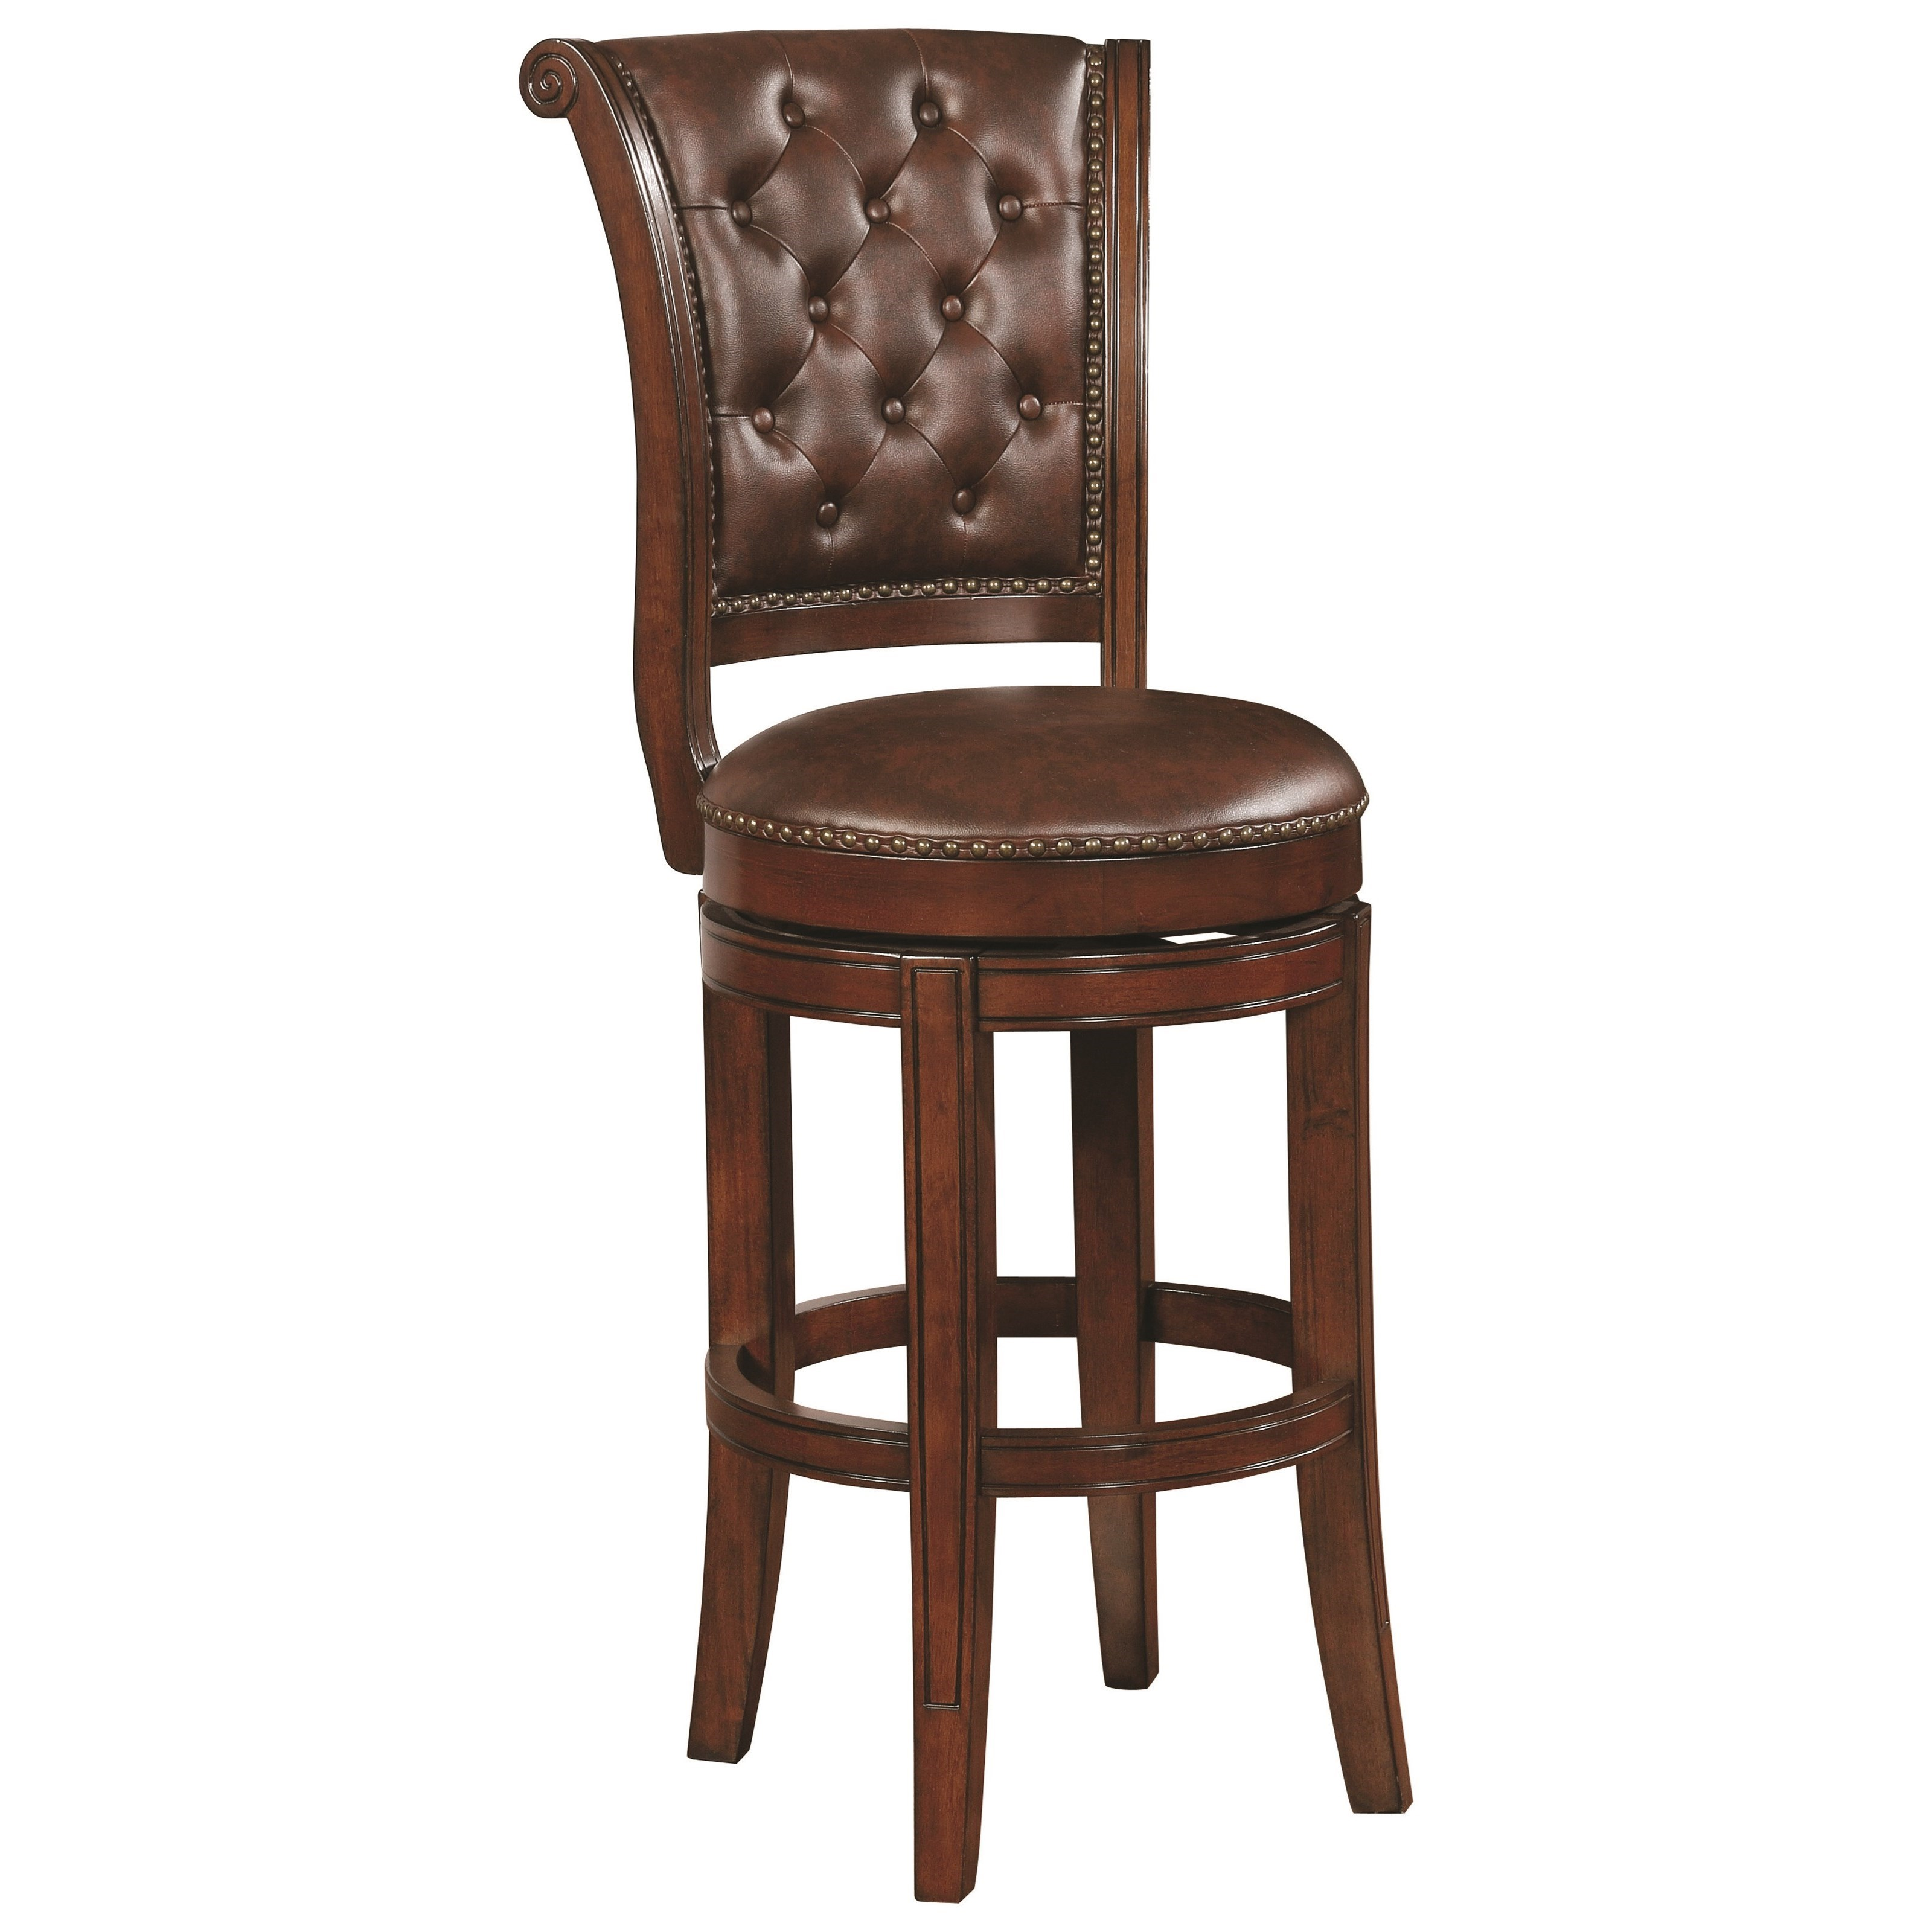 Coaster Dining Chairs and Bar Stools Bar Stool - Item Number: 102936